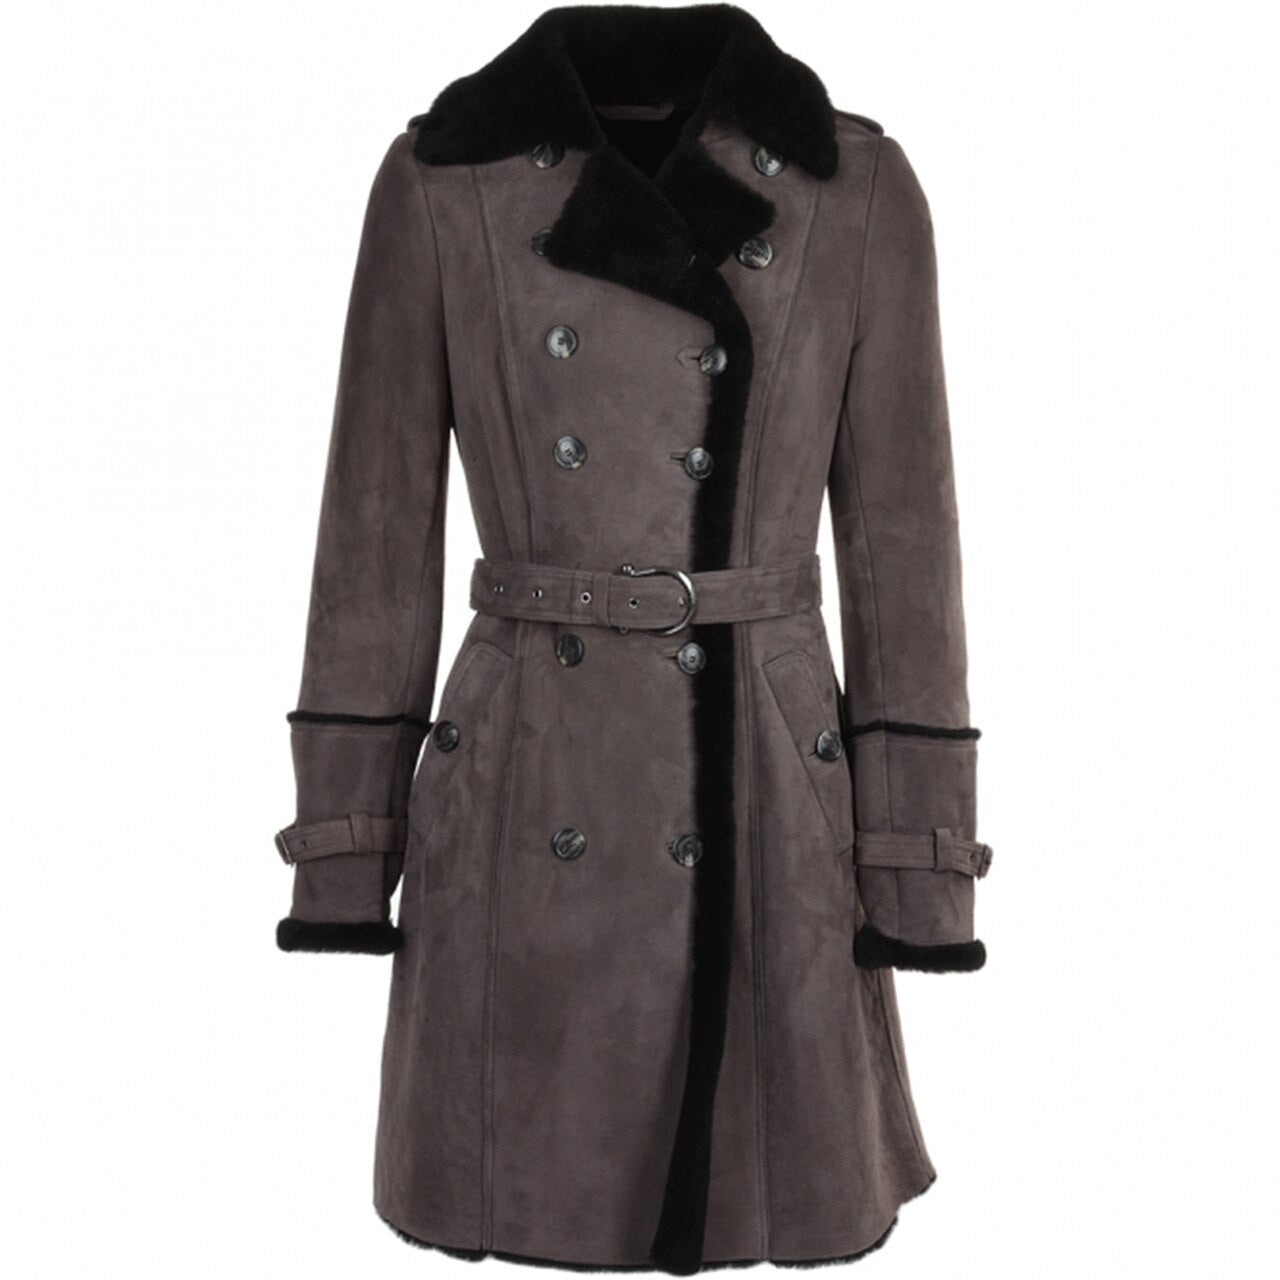 Women's Grey Trench Coat